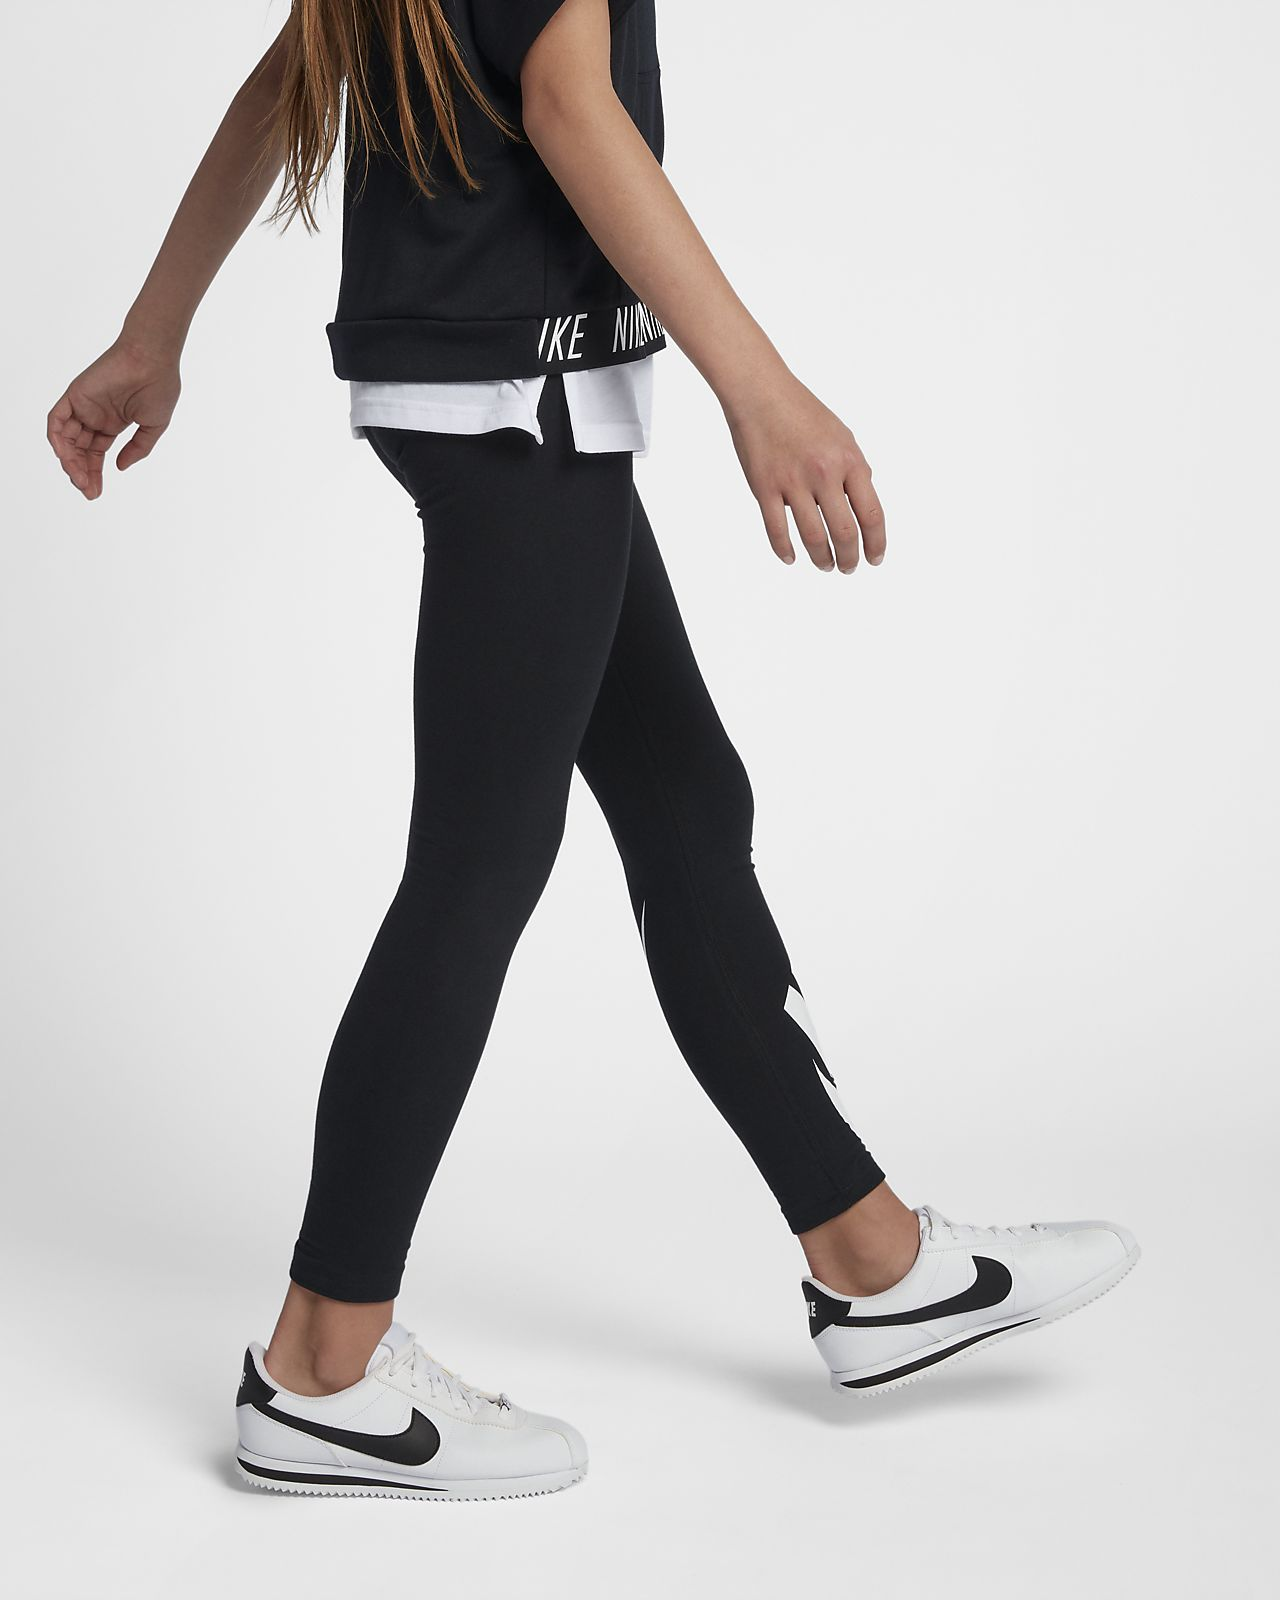 Nike running tights youth